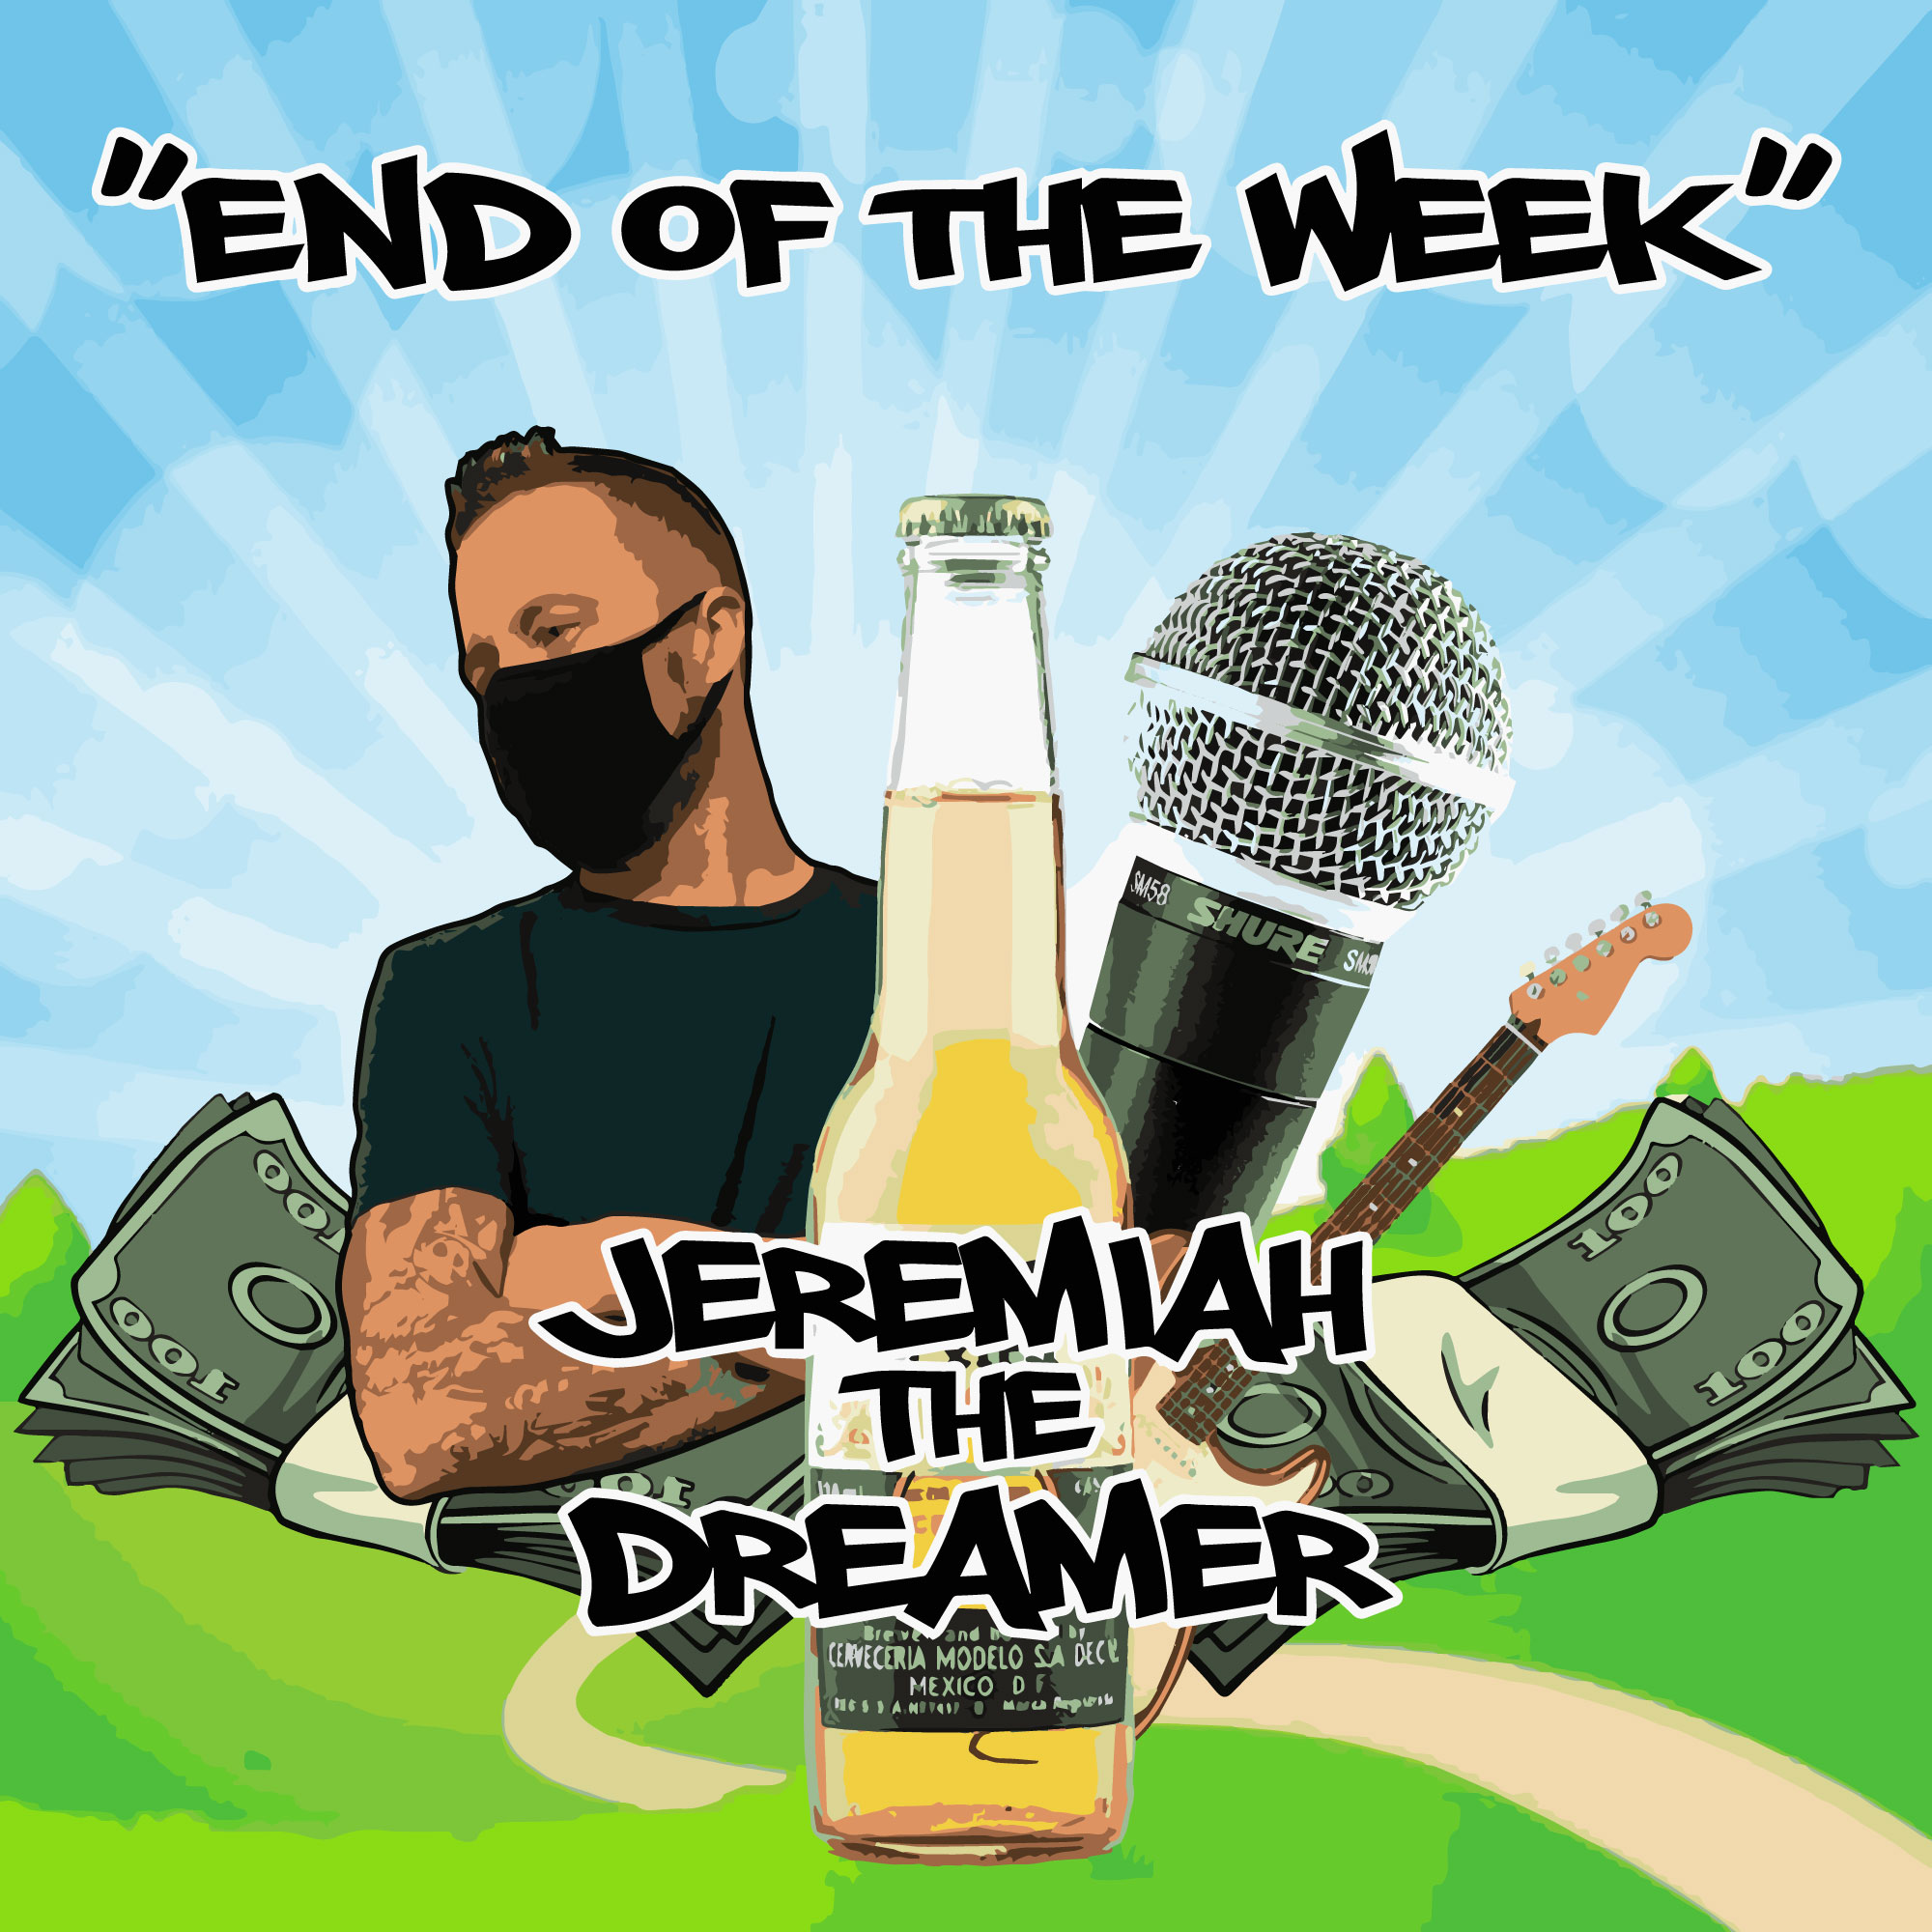 """End of the week"" by Jeremiah the Dreamer"